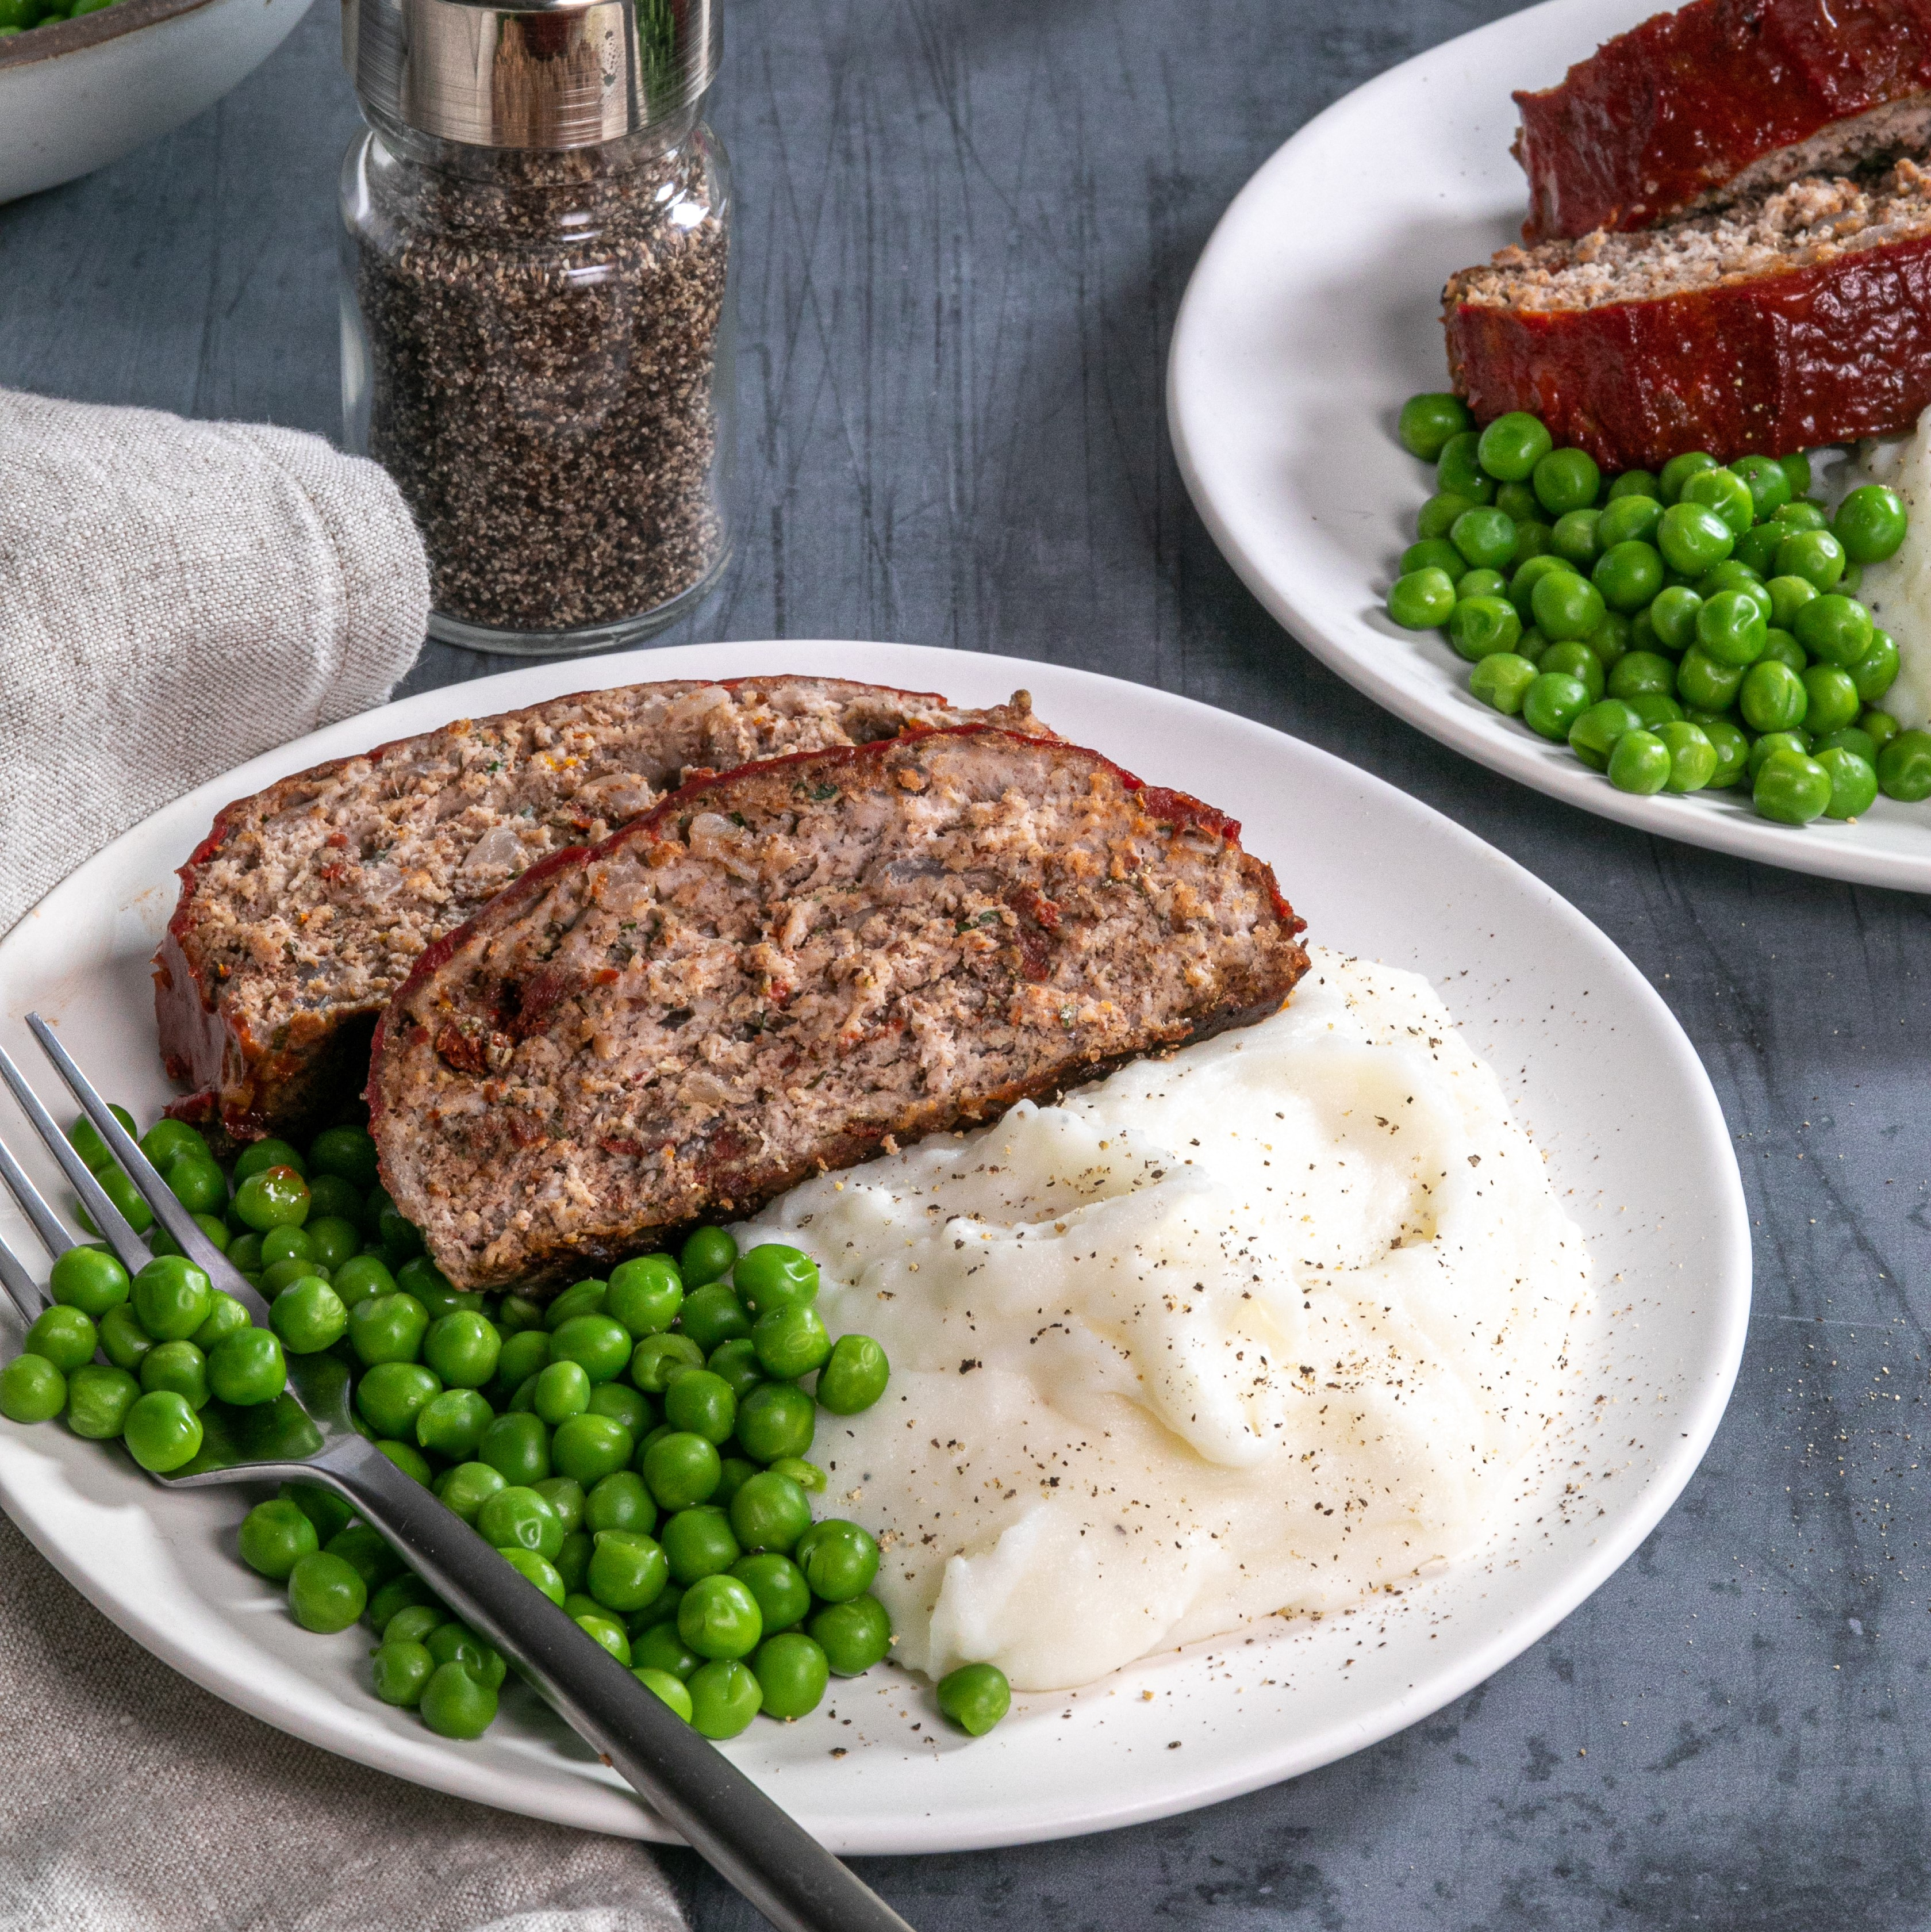 Turkey-Pecan Meatloaf with Sun-dried Tomatoes